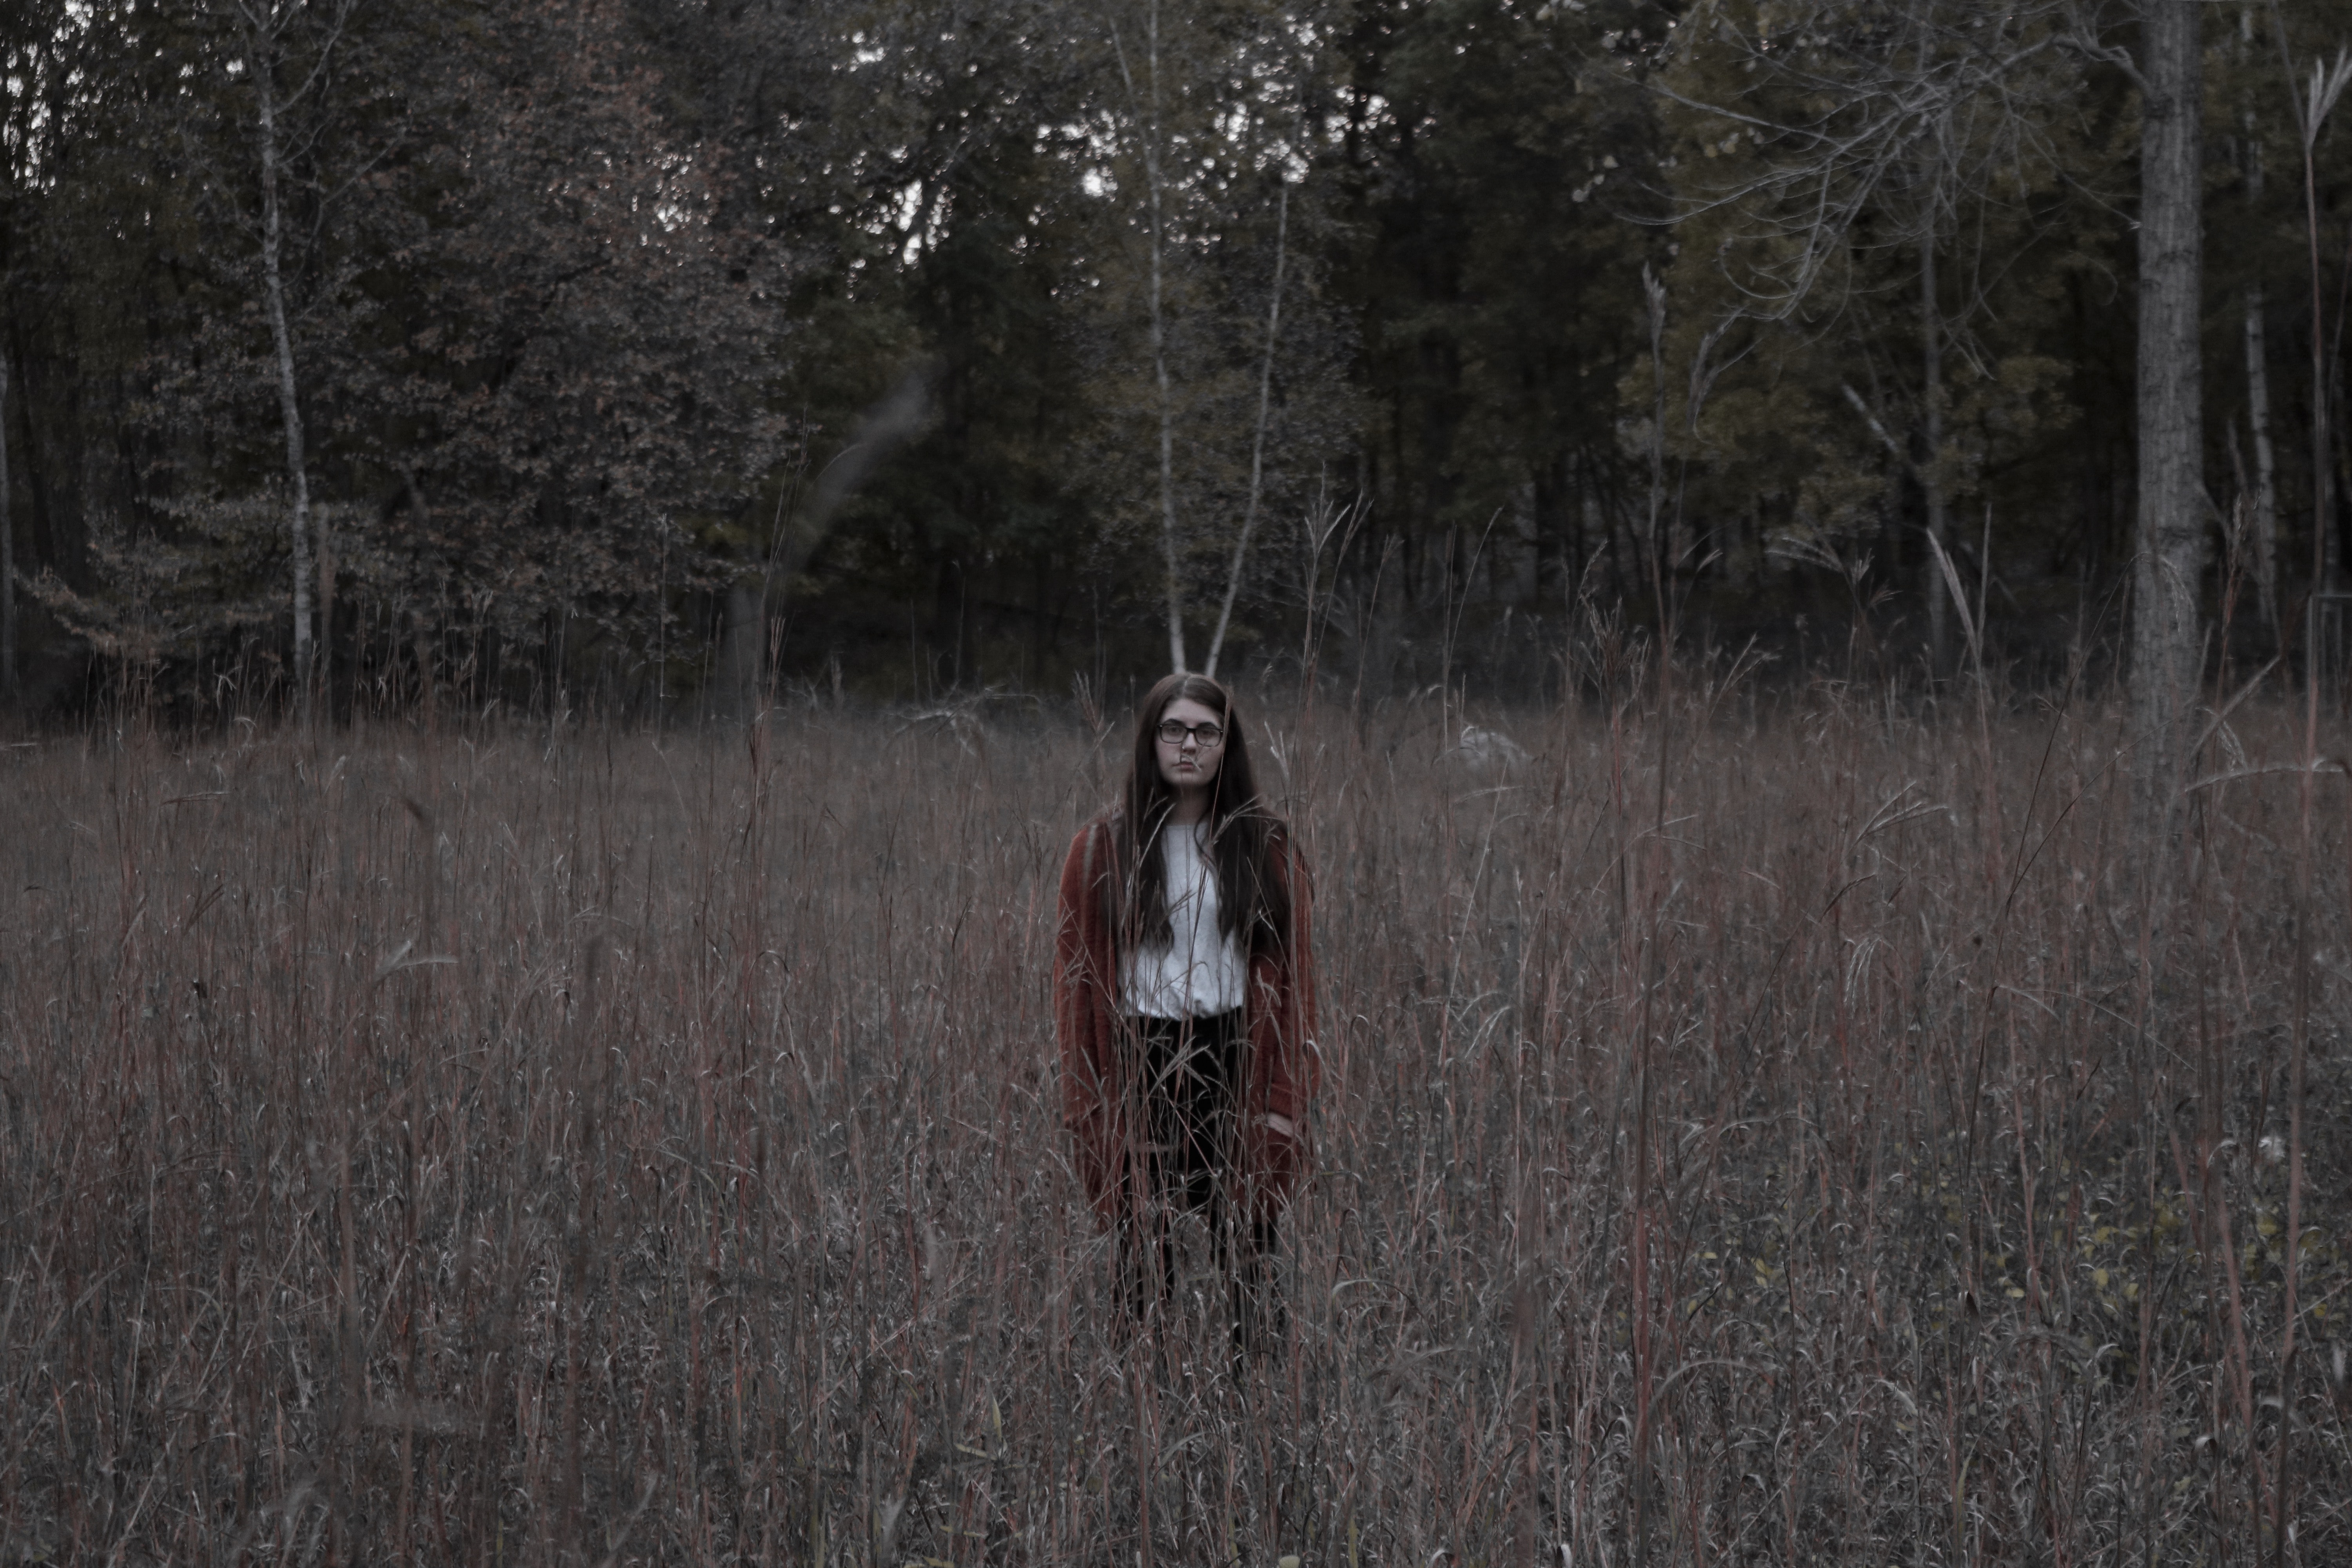 woman standing on the ground surrounded by grass